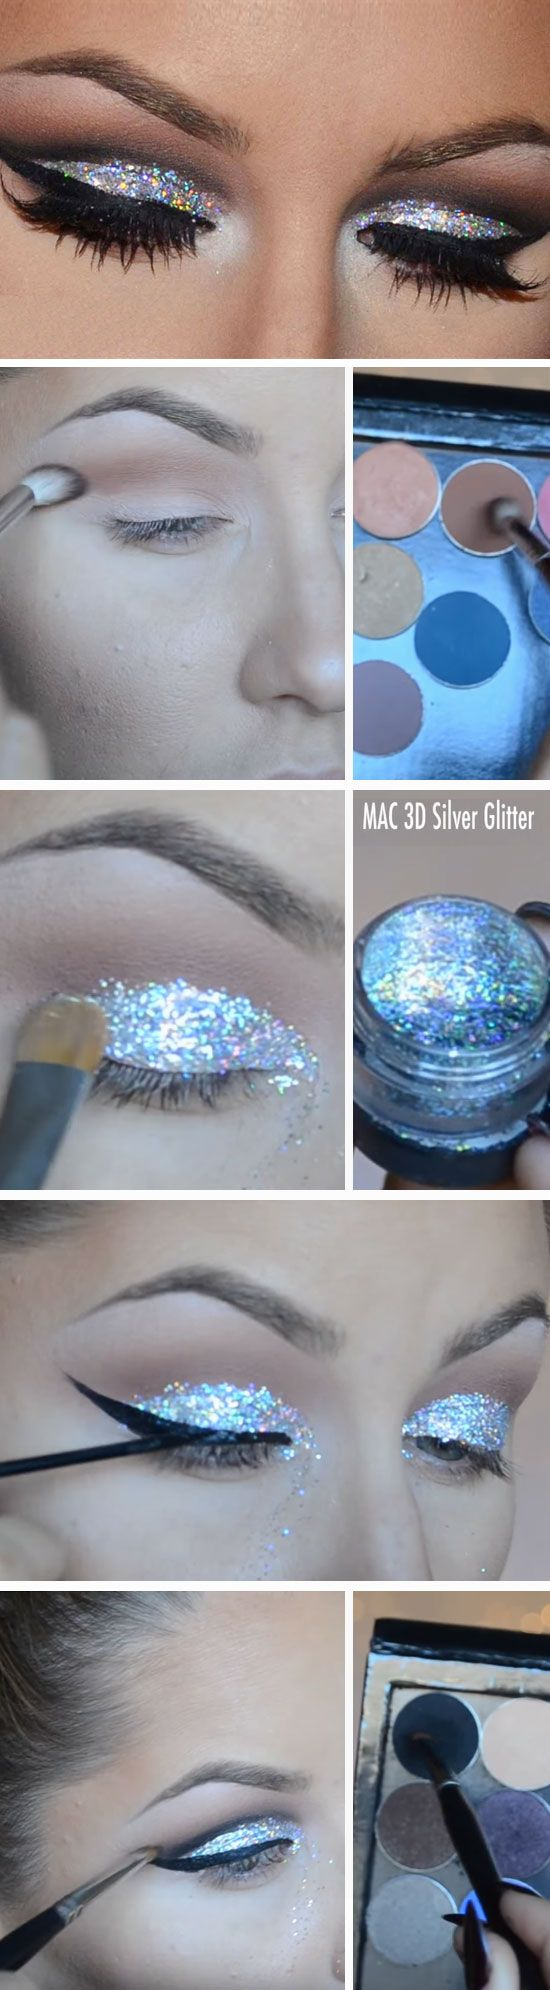 Silver Glitter | Awesome Prom Makeup Ideas Full Face | DIY New Years Eve Makeup Looks Eyeshadows